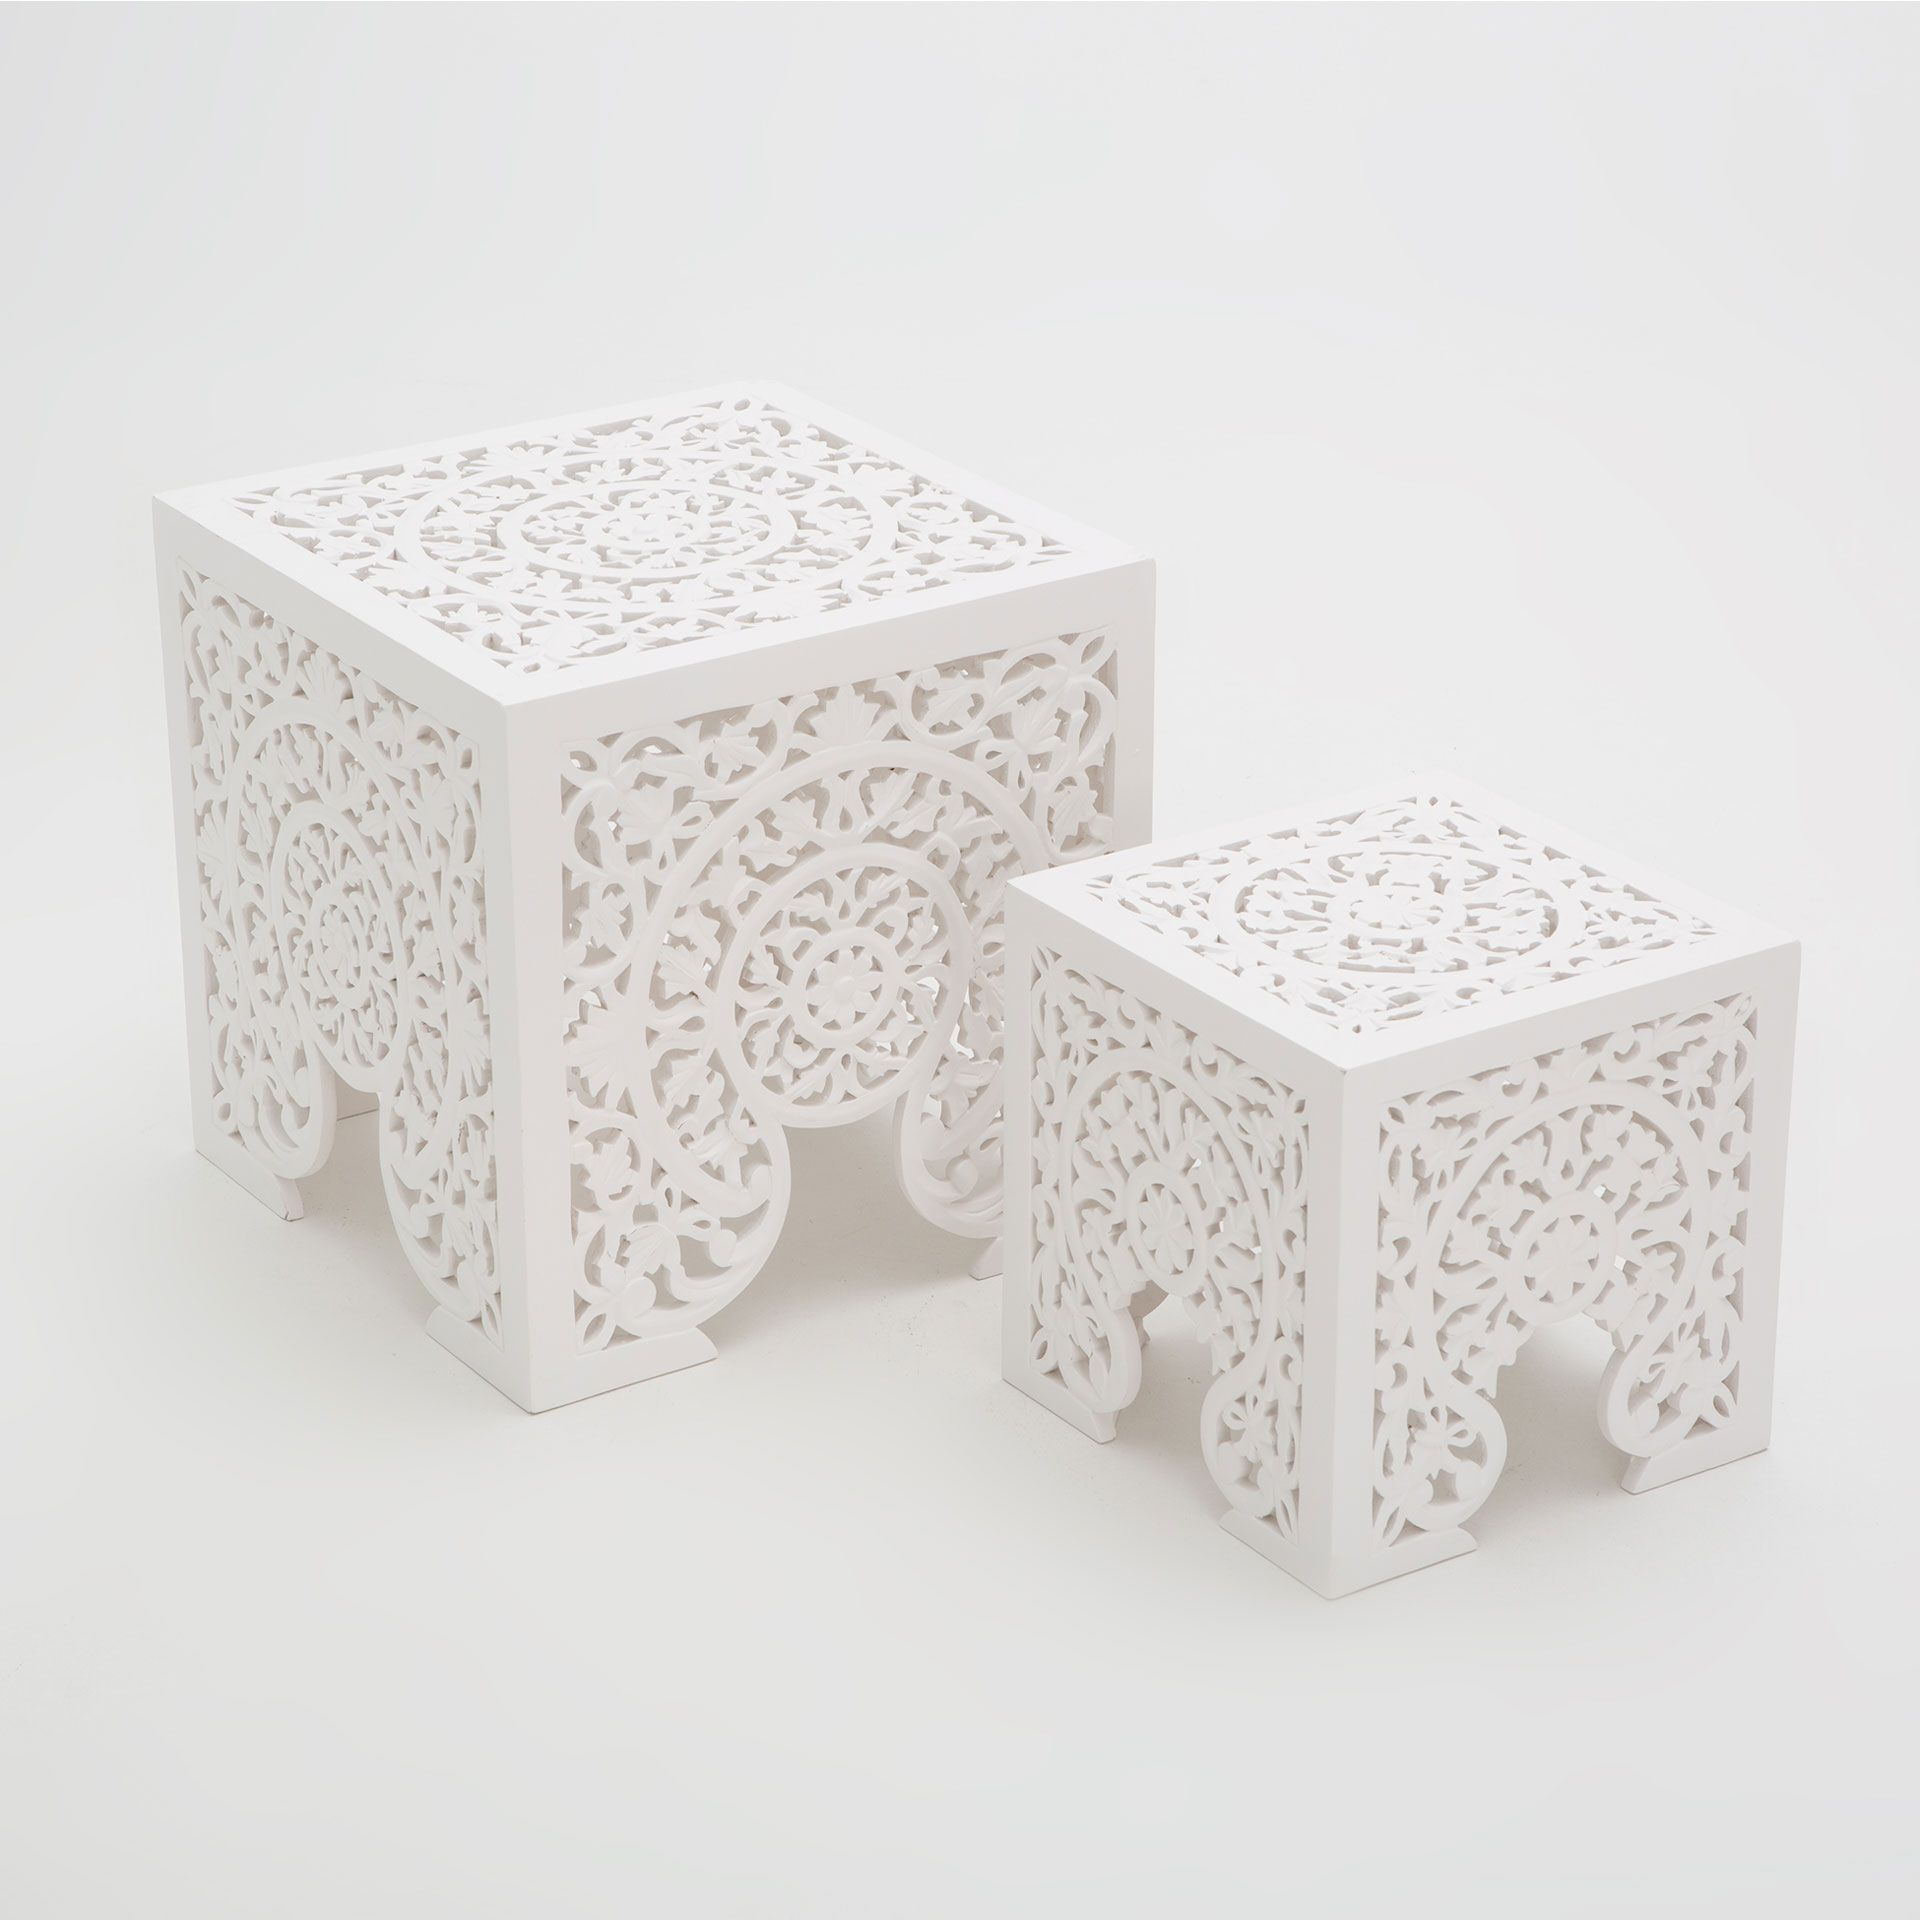 Meuble Tv Zara Home - Openwork Nest Of Tables Set Of 2 Occasional Furniture [mjhdah]http://www.beerandrail.com/wp-content/uploads/2018/02/meuble-a-cases-ikea-beautiful-liatorp-binaison-meuble-tv-blanc-331×214-cm-ikea-of-meuble-a-cases-ikea.jpg